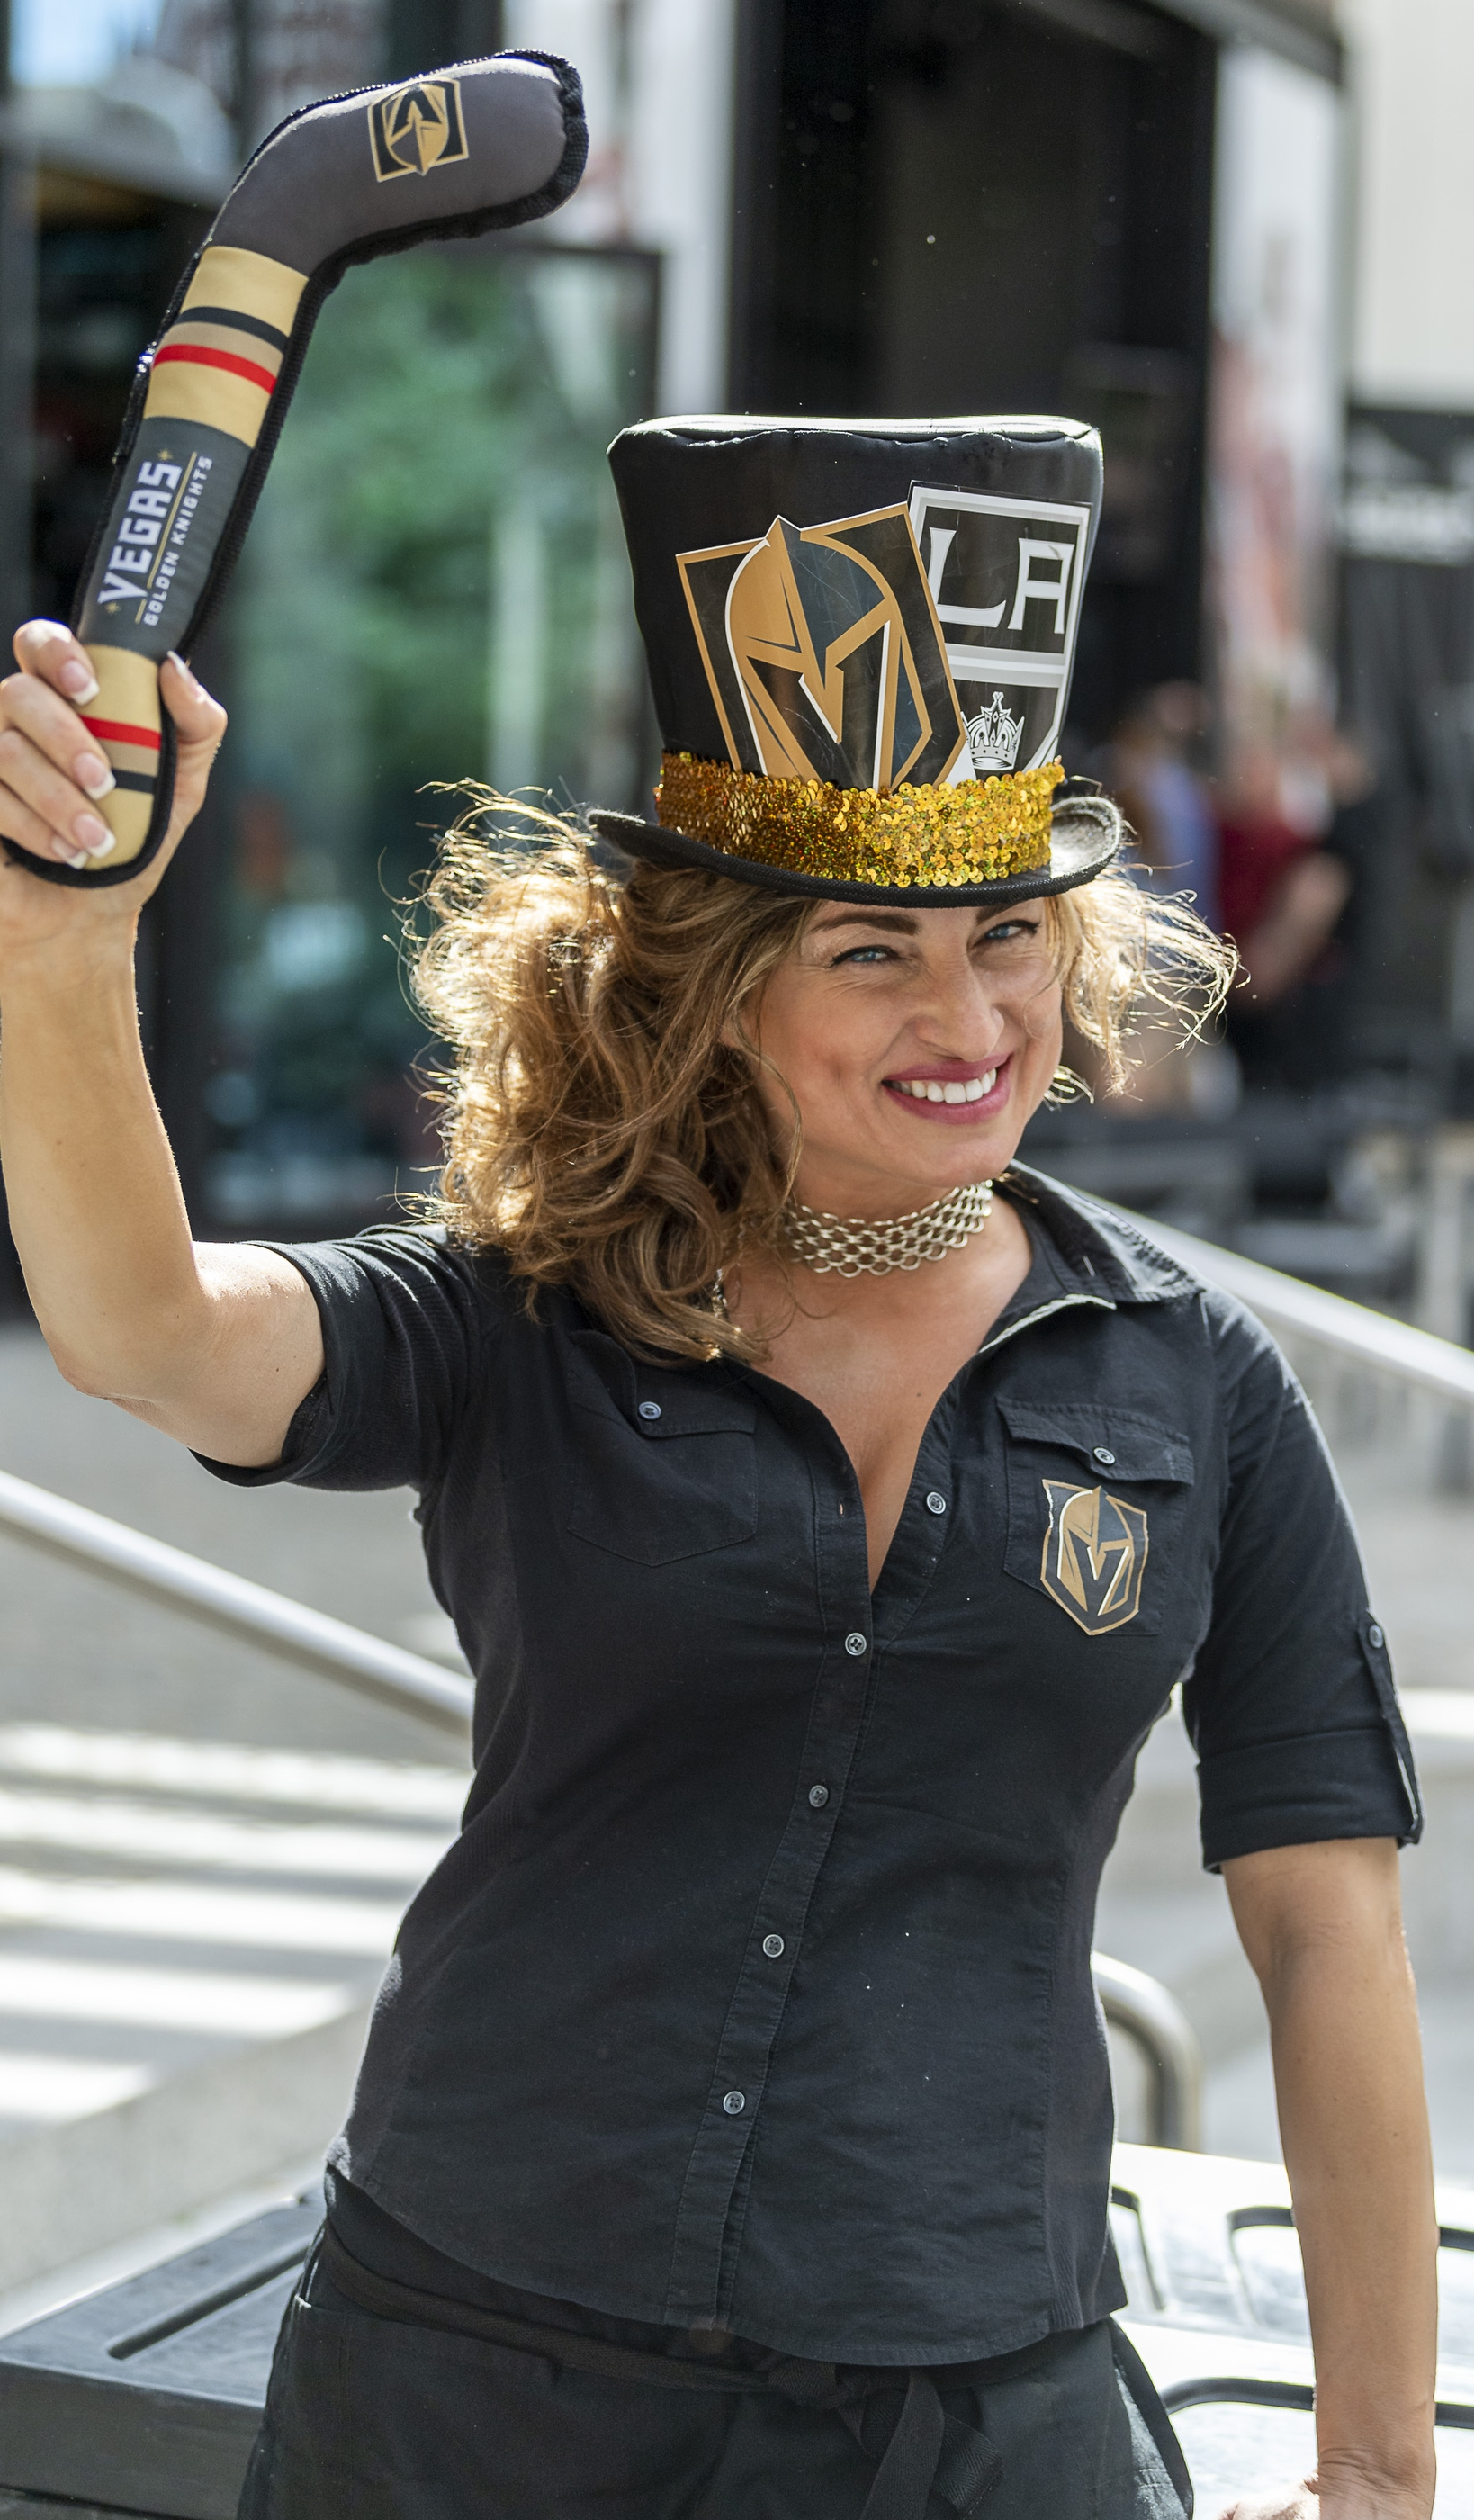 Server Malvina Von Krieger at California Pizza Kitchen in The Park shows her spirit as the Vegas Golden Knights prepare to meet the Los Angeles Kings in the first quarterfinal game of the NHL Stanley Cup Playoffs at T-Mobile Arena in Las Vegas on Wednesday, April 11, 2018.  CREDIT: Mark Damon/Las Vegas News Bureau